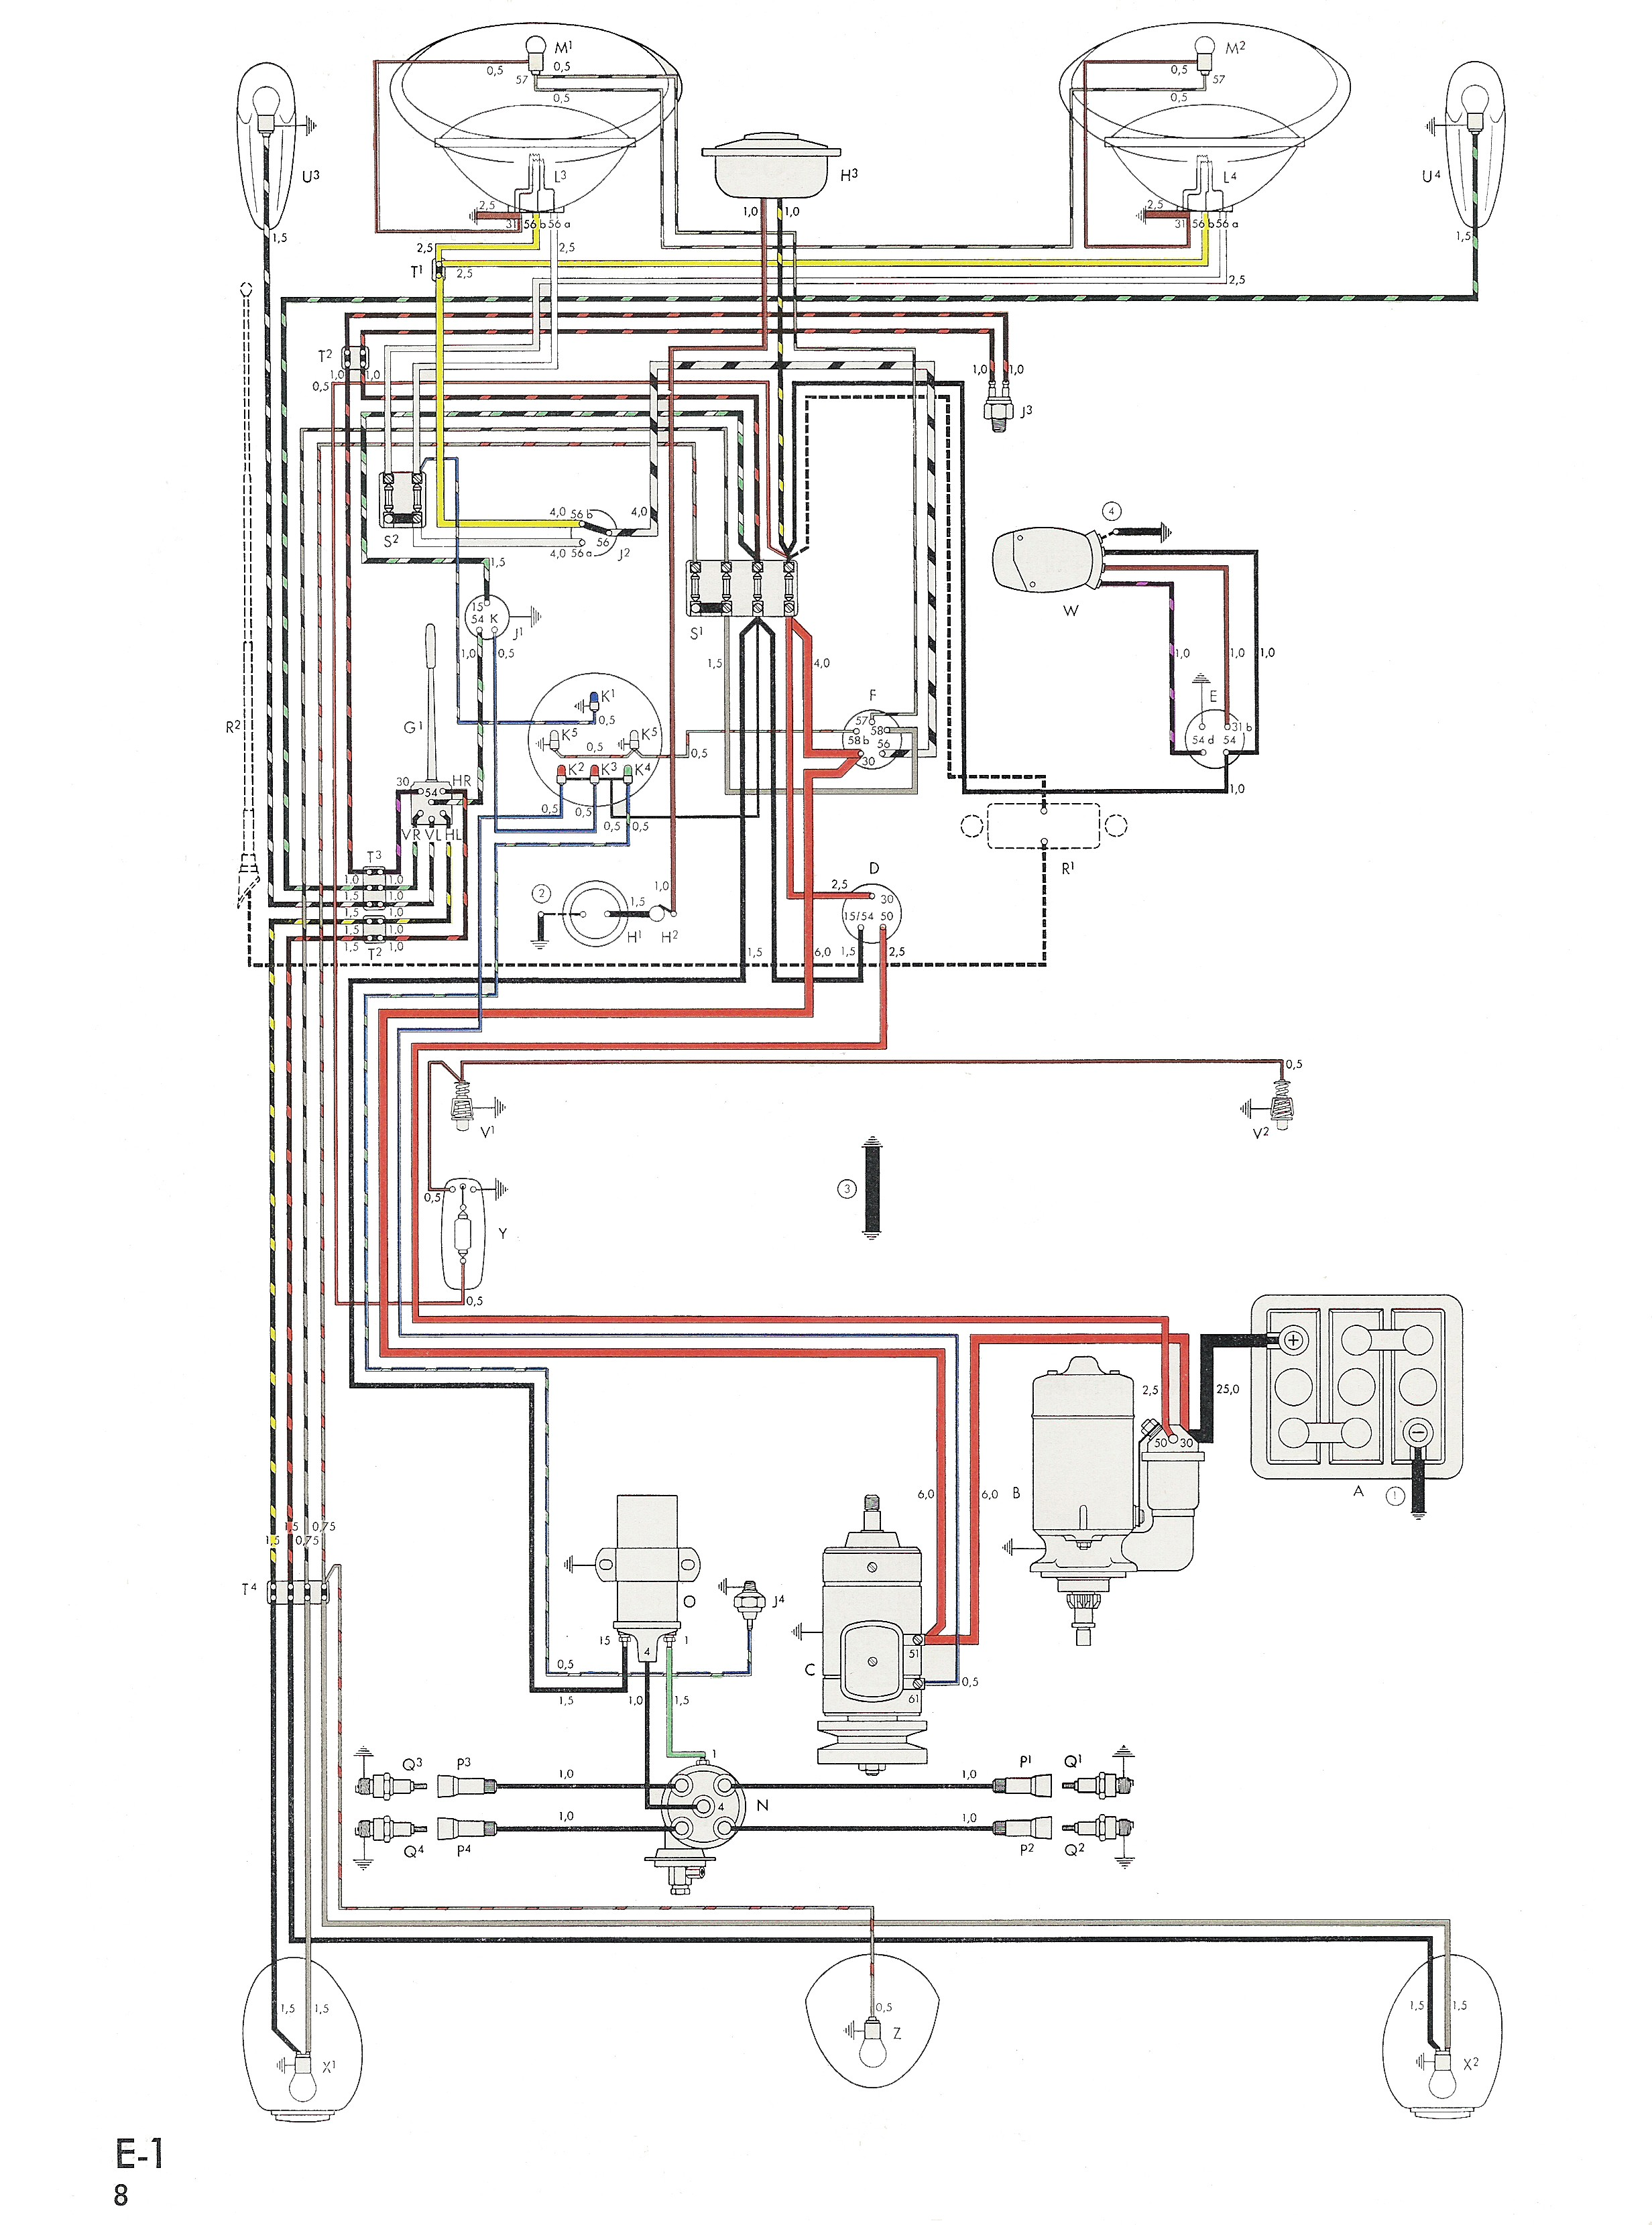 Voltage Regulator Wiring Diagram 1964 Vw - Best site wiring harness